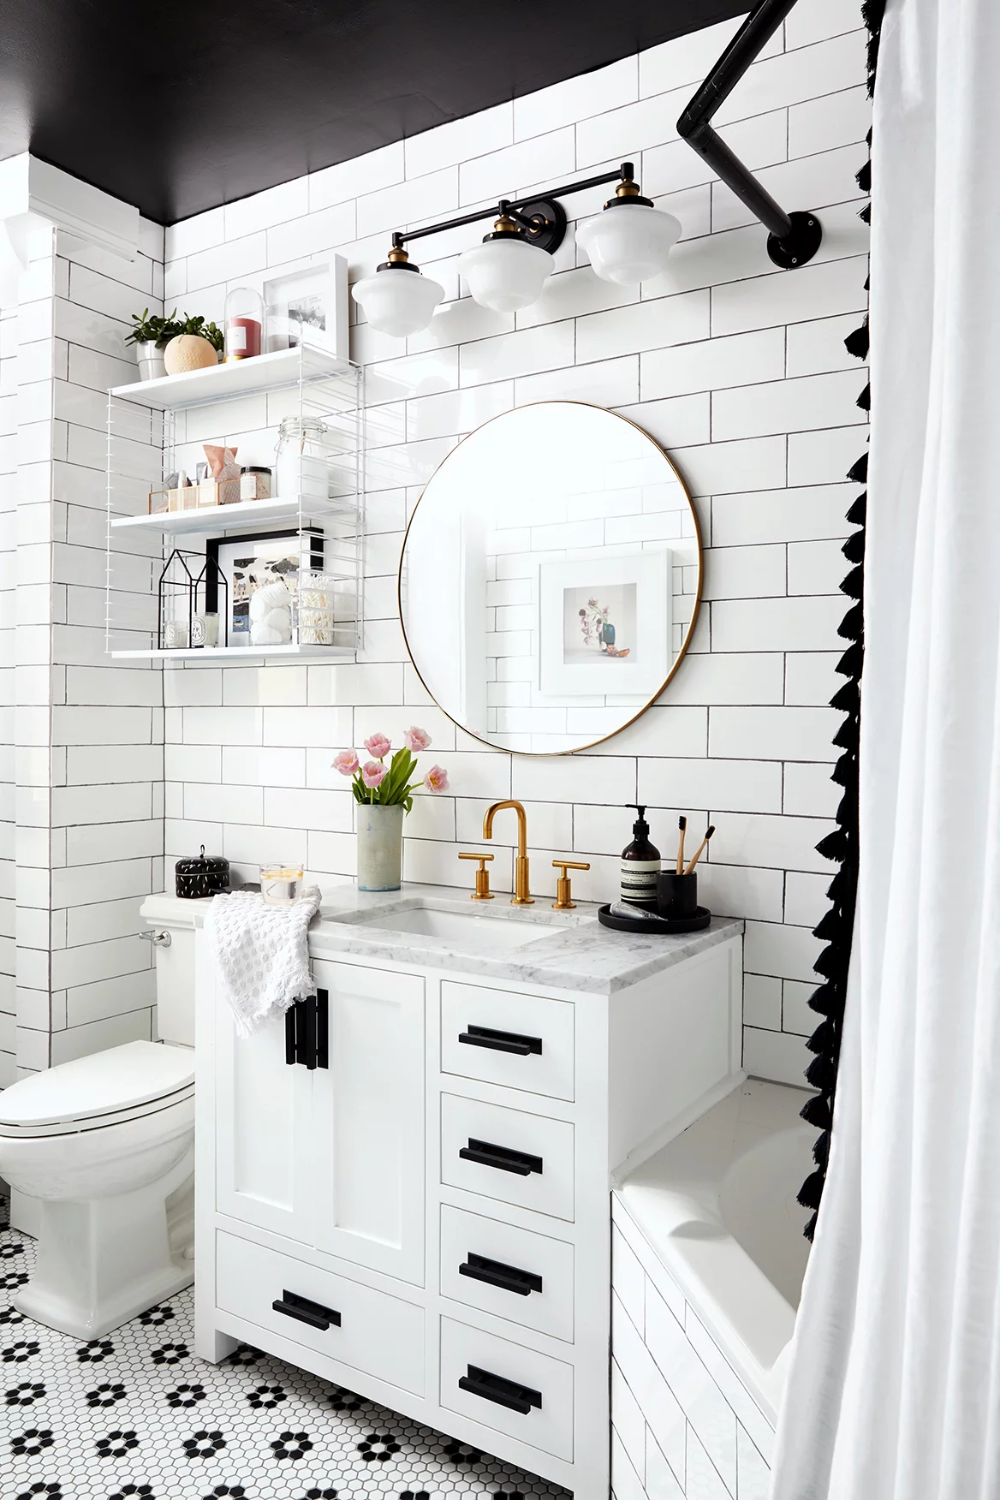 14 small space lessons from a 750 square foot townhome on best bathroom renovation ideas get your dream bathroom id=21871